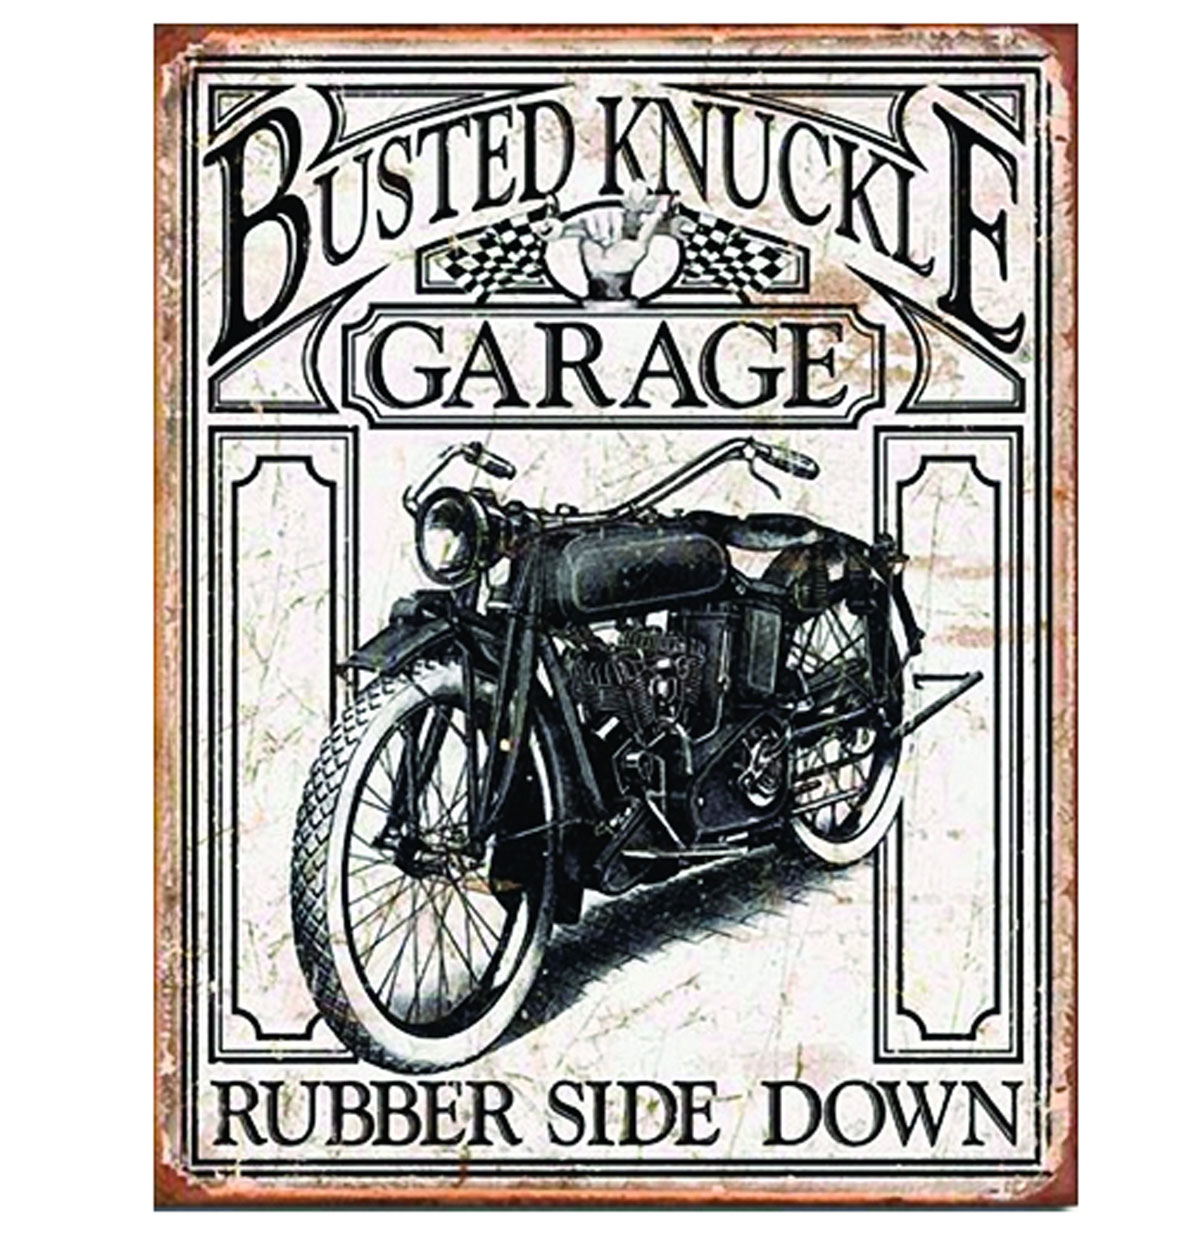 Metalen Poster- Busted Knuckle Garage Motorcycle Rubber Side Down